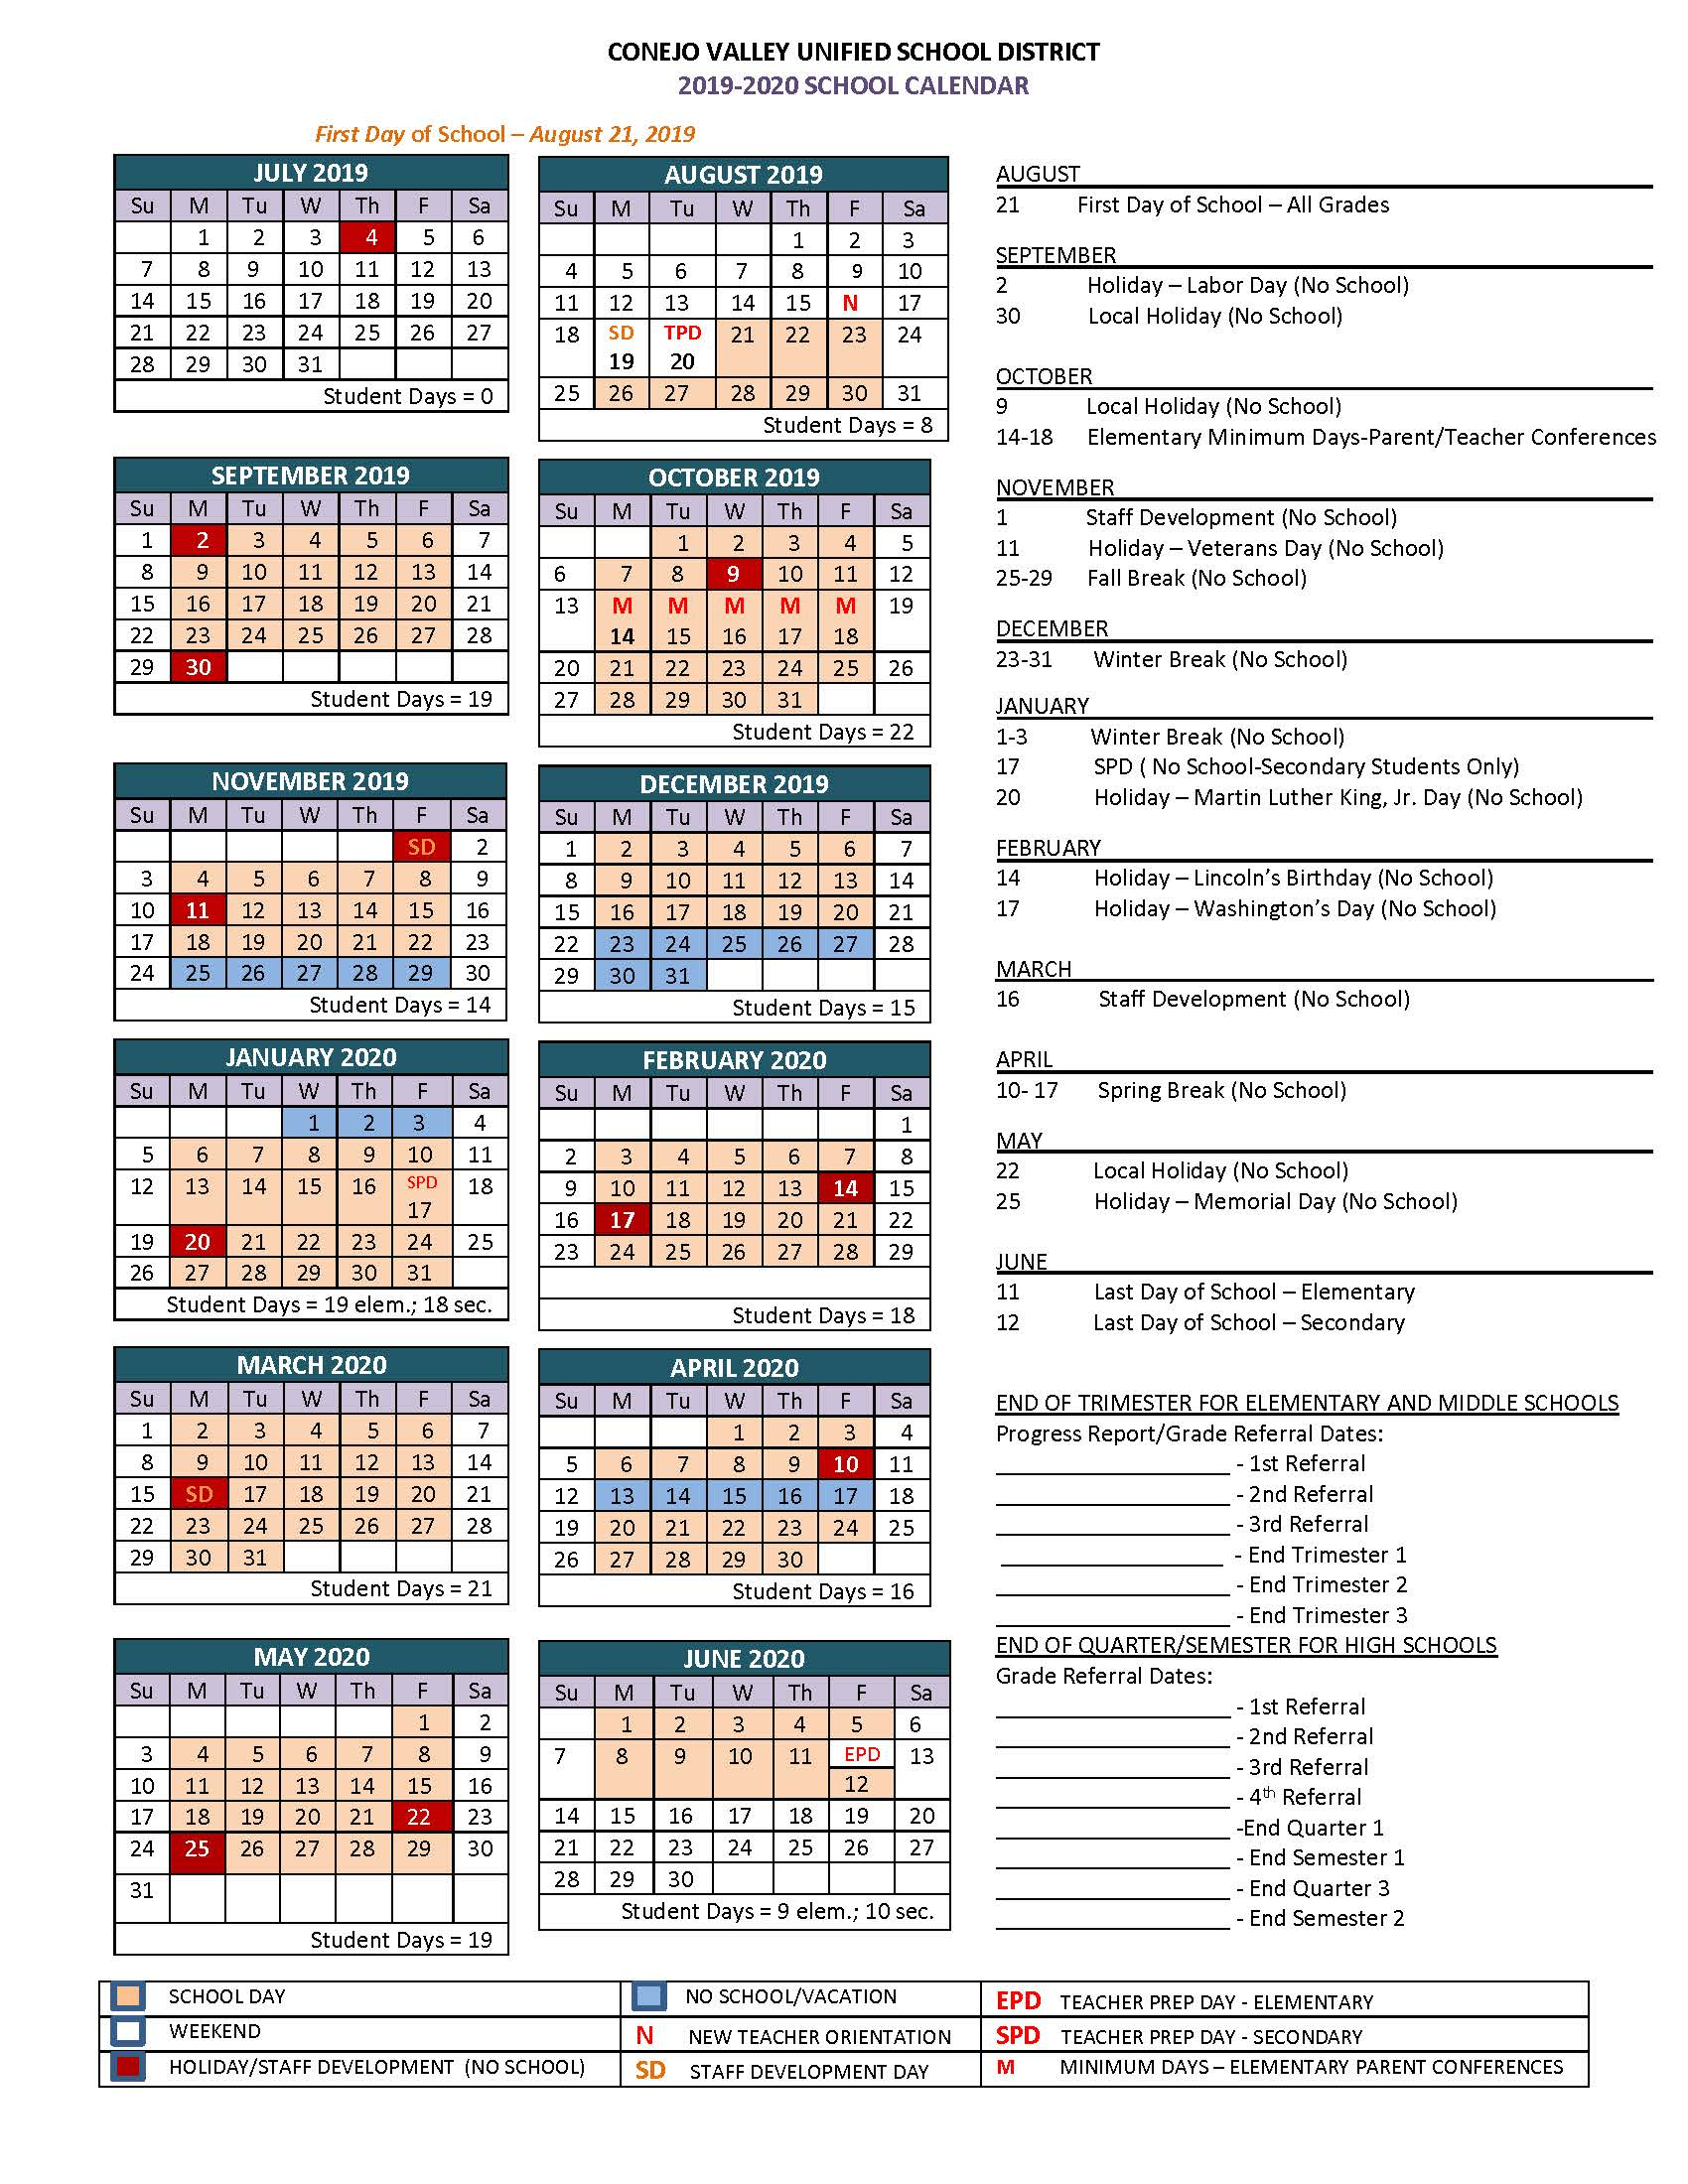 Board Of Education Approves The 2019 2020 Cvusd School Year Throughout Board Of Education Calendar